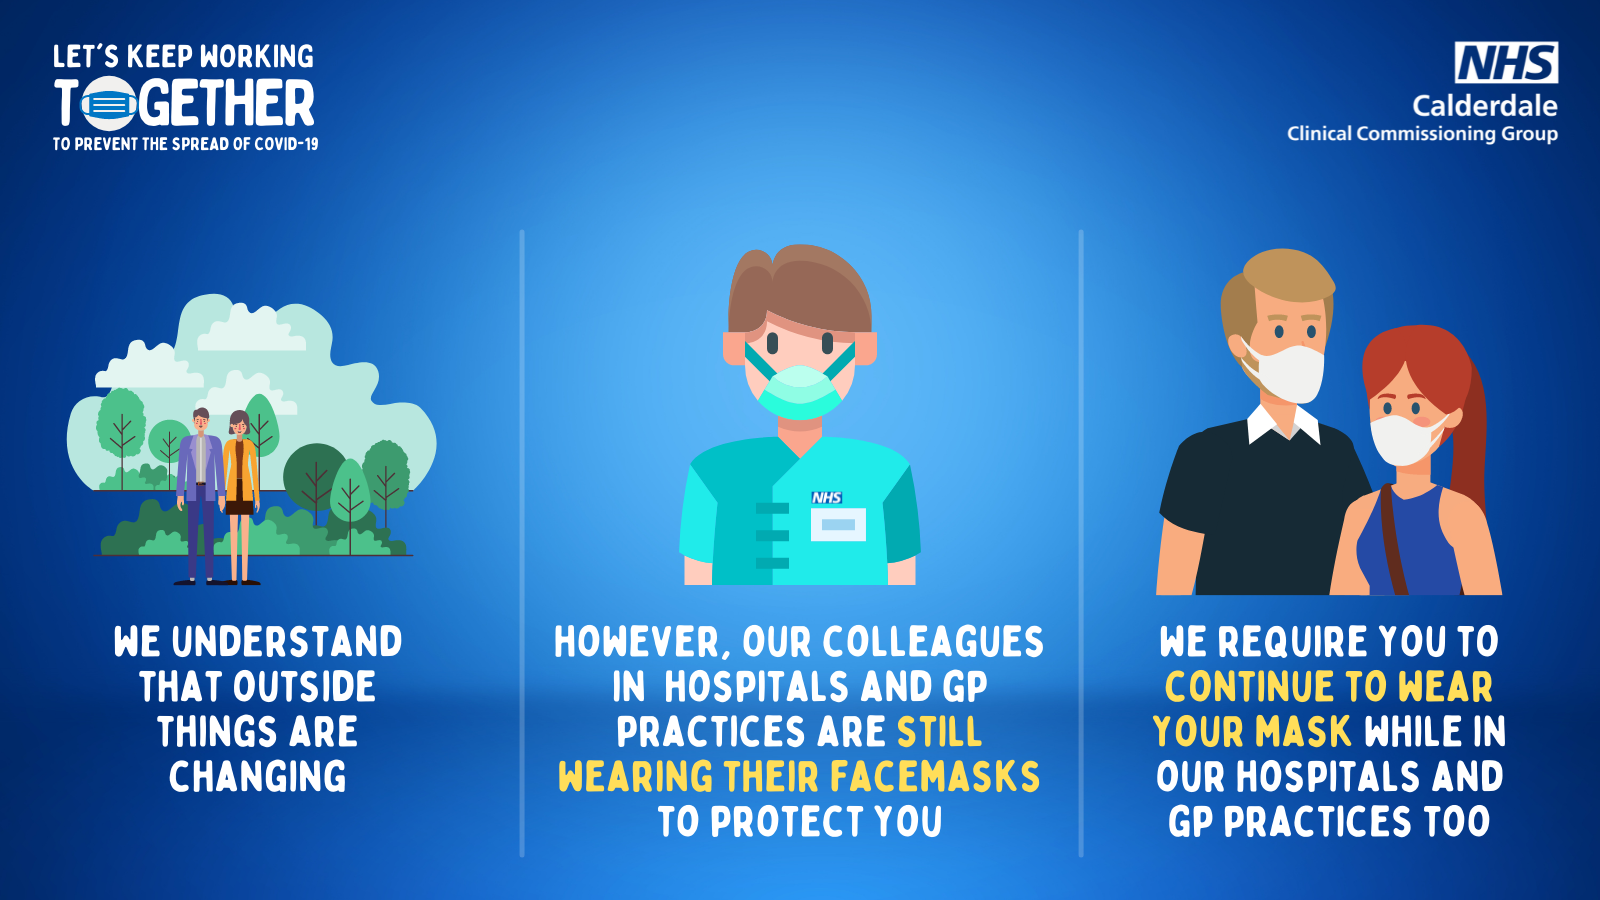 We understand that outside things are changing. However, our colleagues in hospitals and GP practices are still wearing their facemasks to protect you. We require you to continue to wear your mask while in our hospitals and gp practices too.